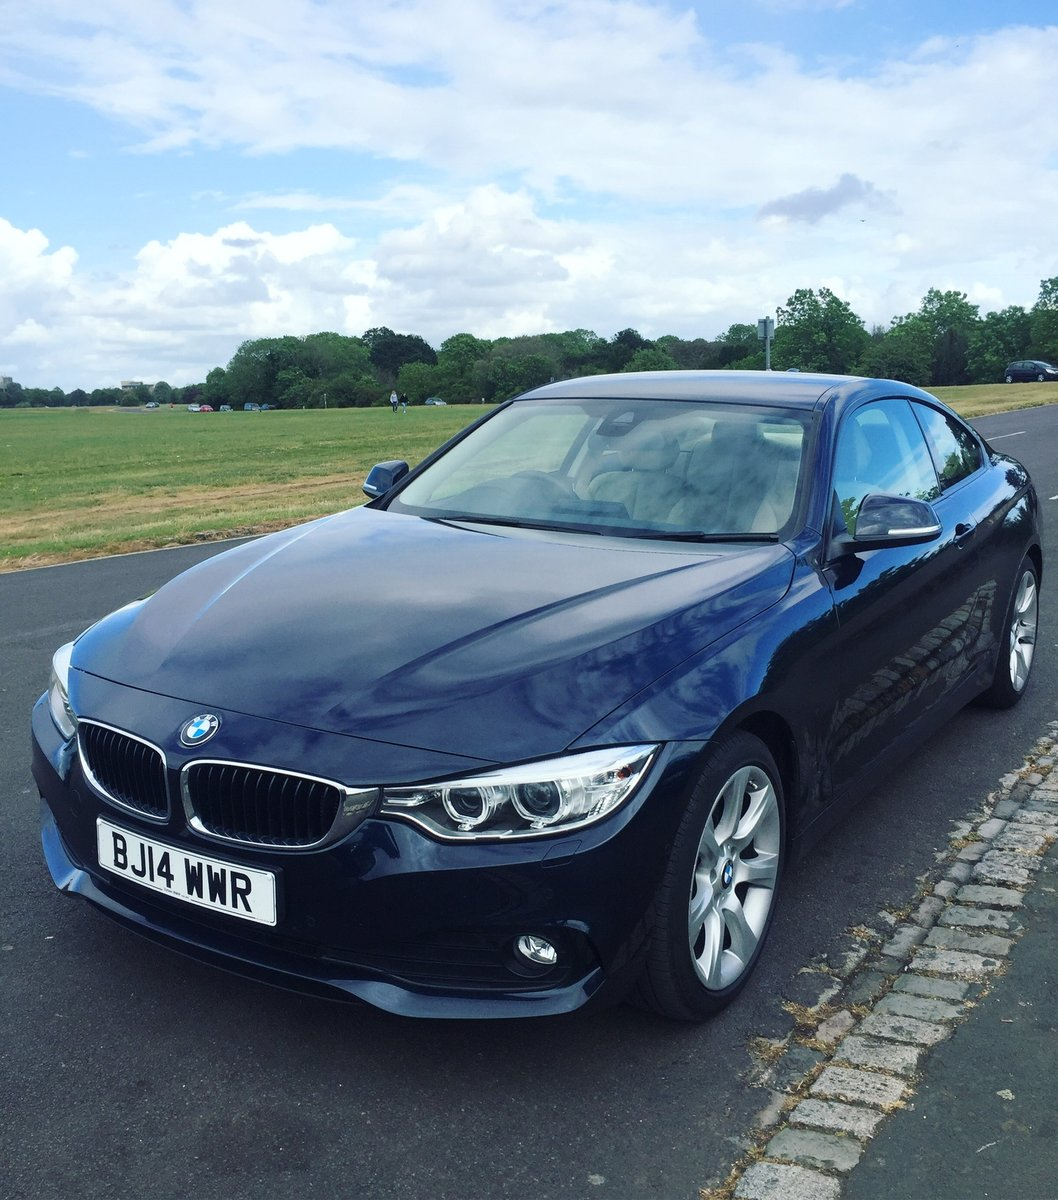 2014 BMW 420d  For Sale (picture 1 of 3)